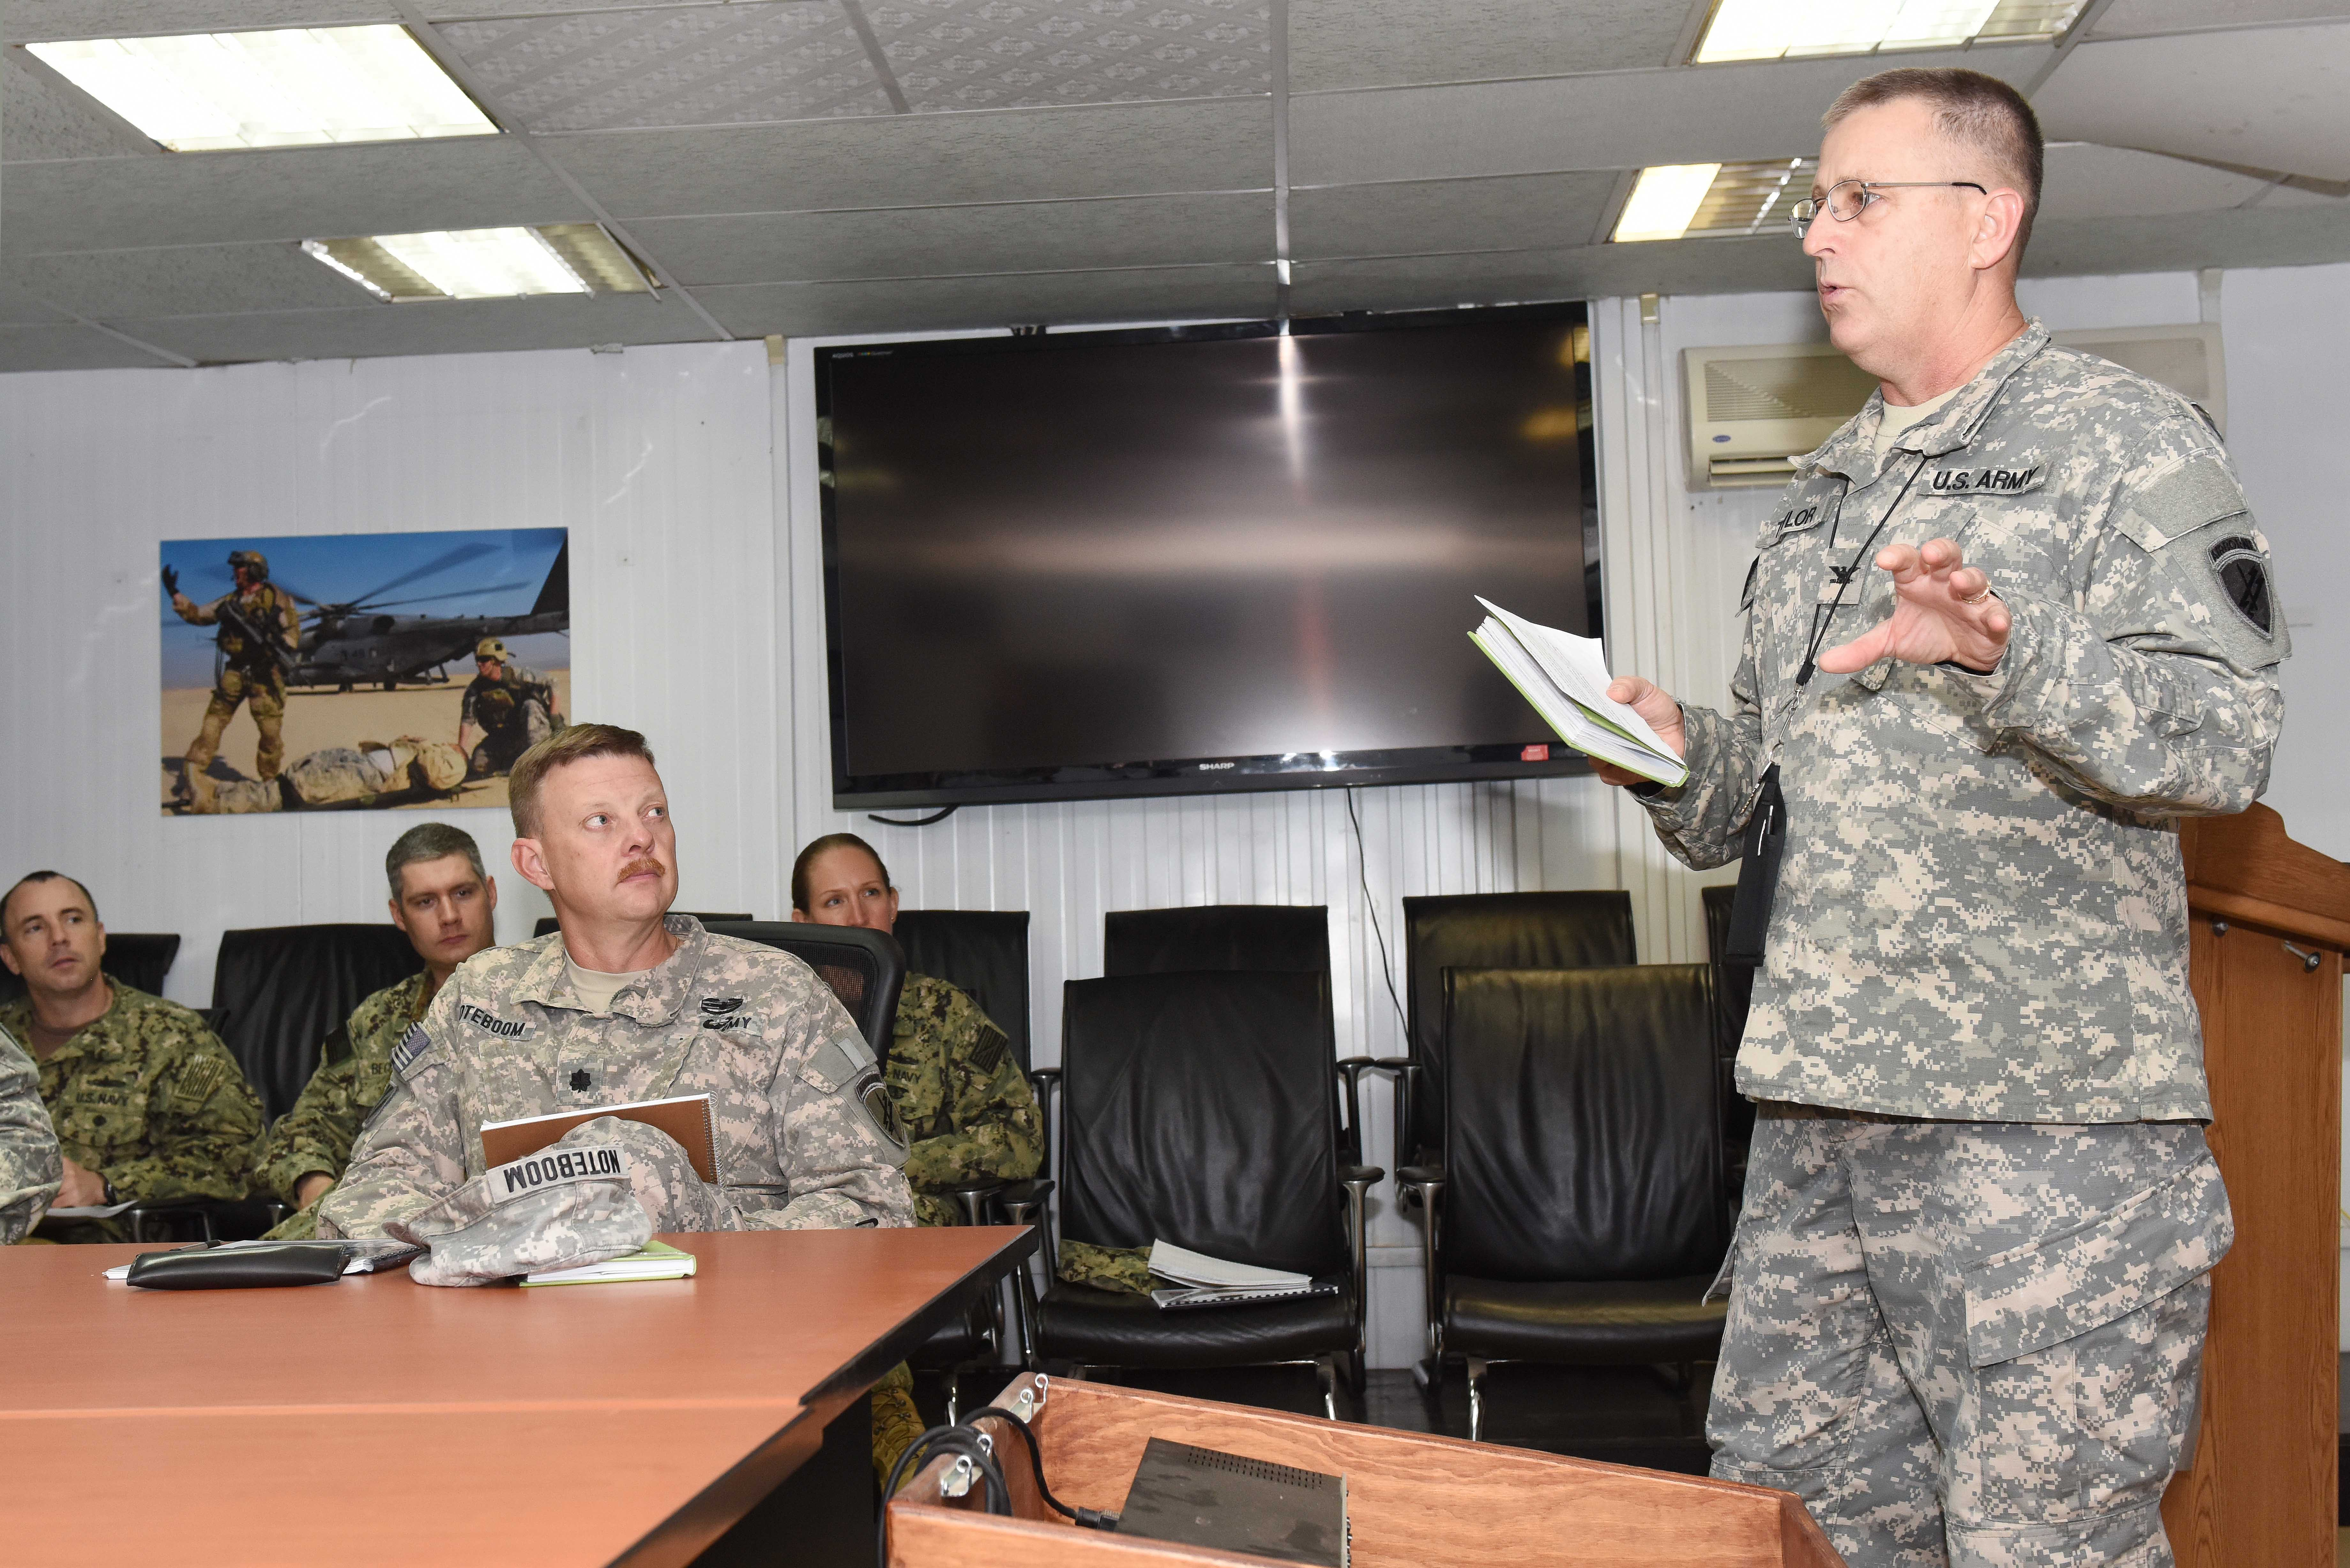 Col. Daniel Taylor, 357th Theater Security Cooperation Fusion Action Cell director, gives opening remarks during a joint humanitarian operations course at Camp Lemonnier, Djibouti, June 1, 2015.  Course attendees learned about the international disaster response system and the U.S. civilian and military responsibilities. (U.S. Air Force photo by Staff Sgt. Maria Bowman)